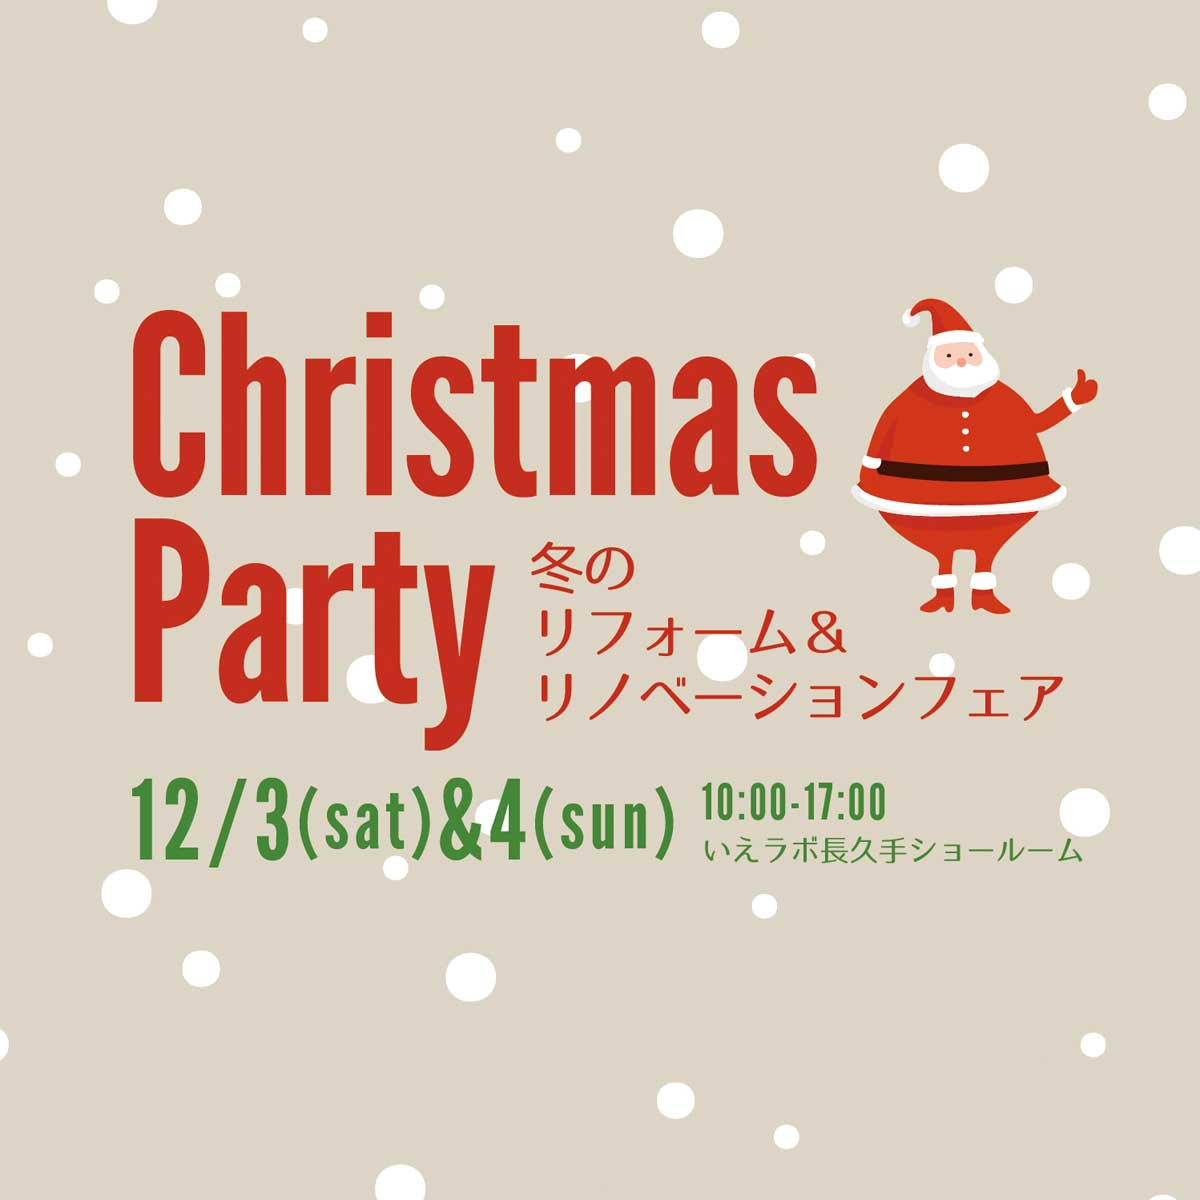 Christmas Party 冬のリフォーム&リノベーションフェア in いえラボ。